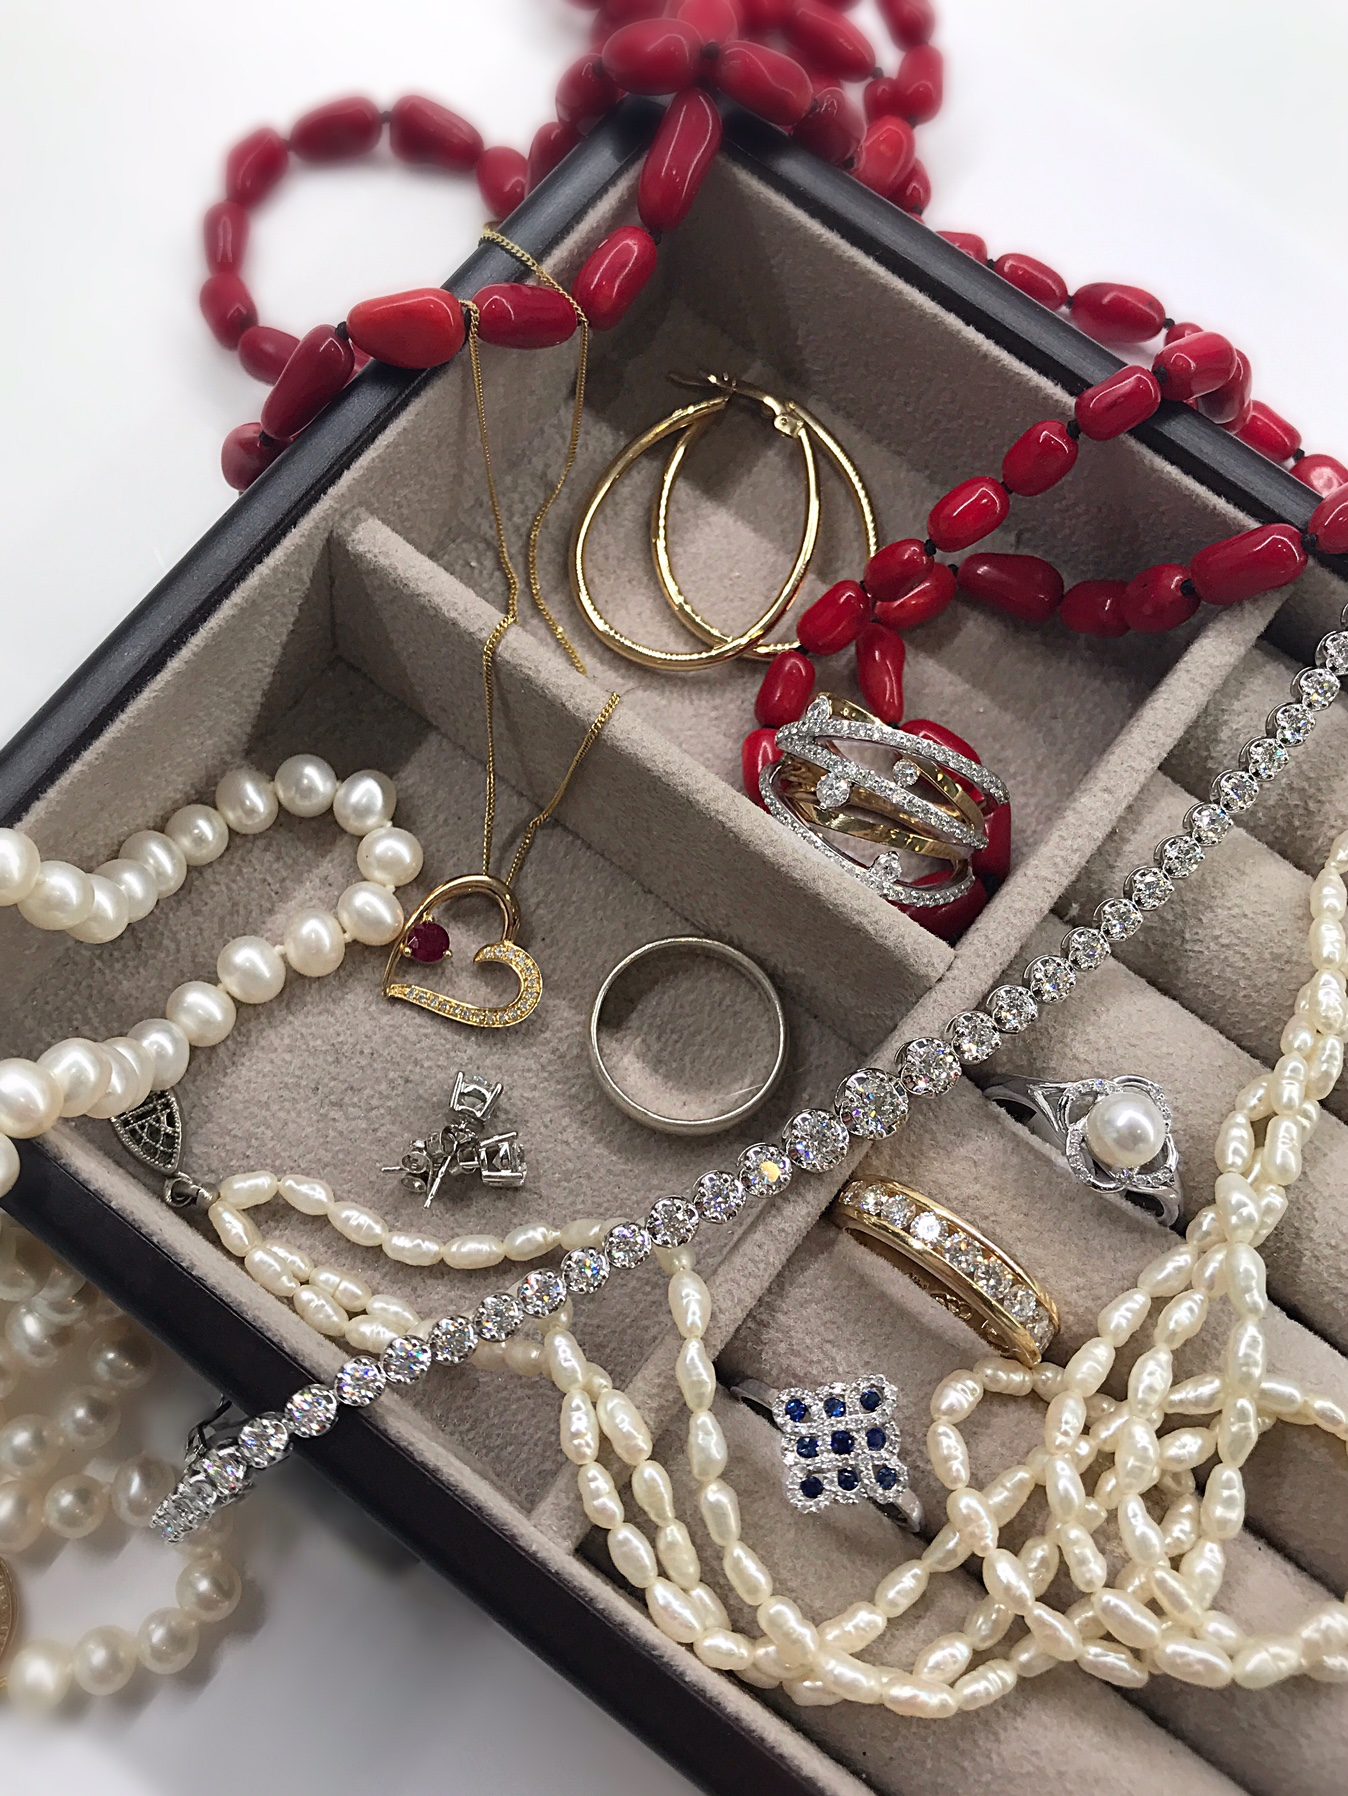 Protecting your jewellery: Creating a personal inventory catalogue